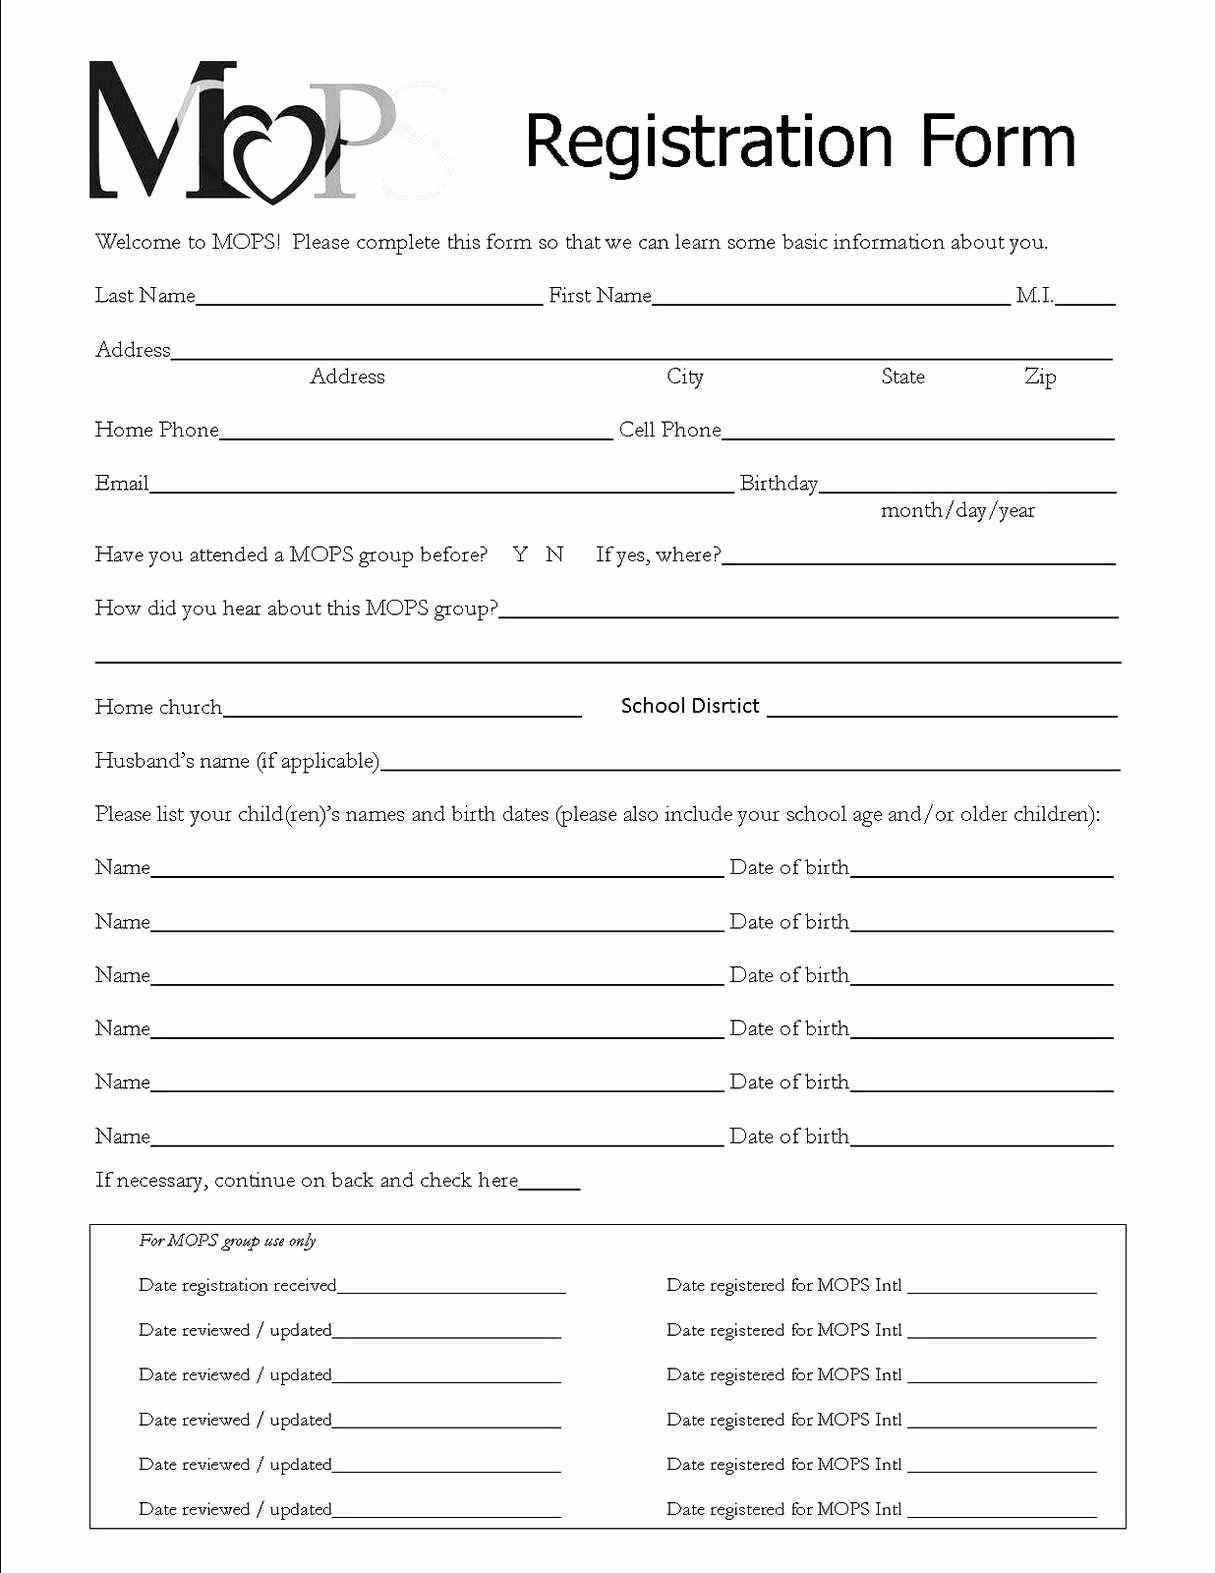 Entry form Template Free Best Of Registration forms Template Free